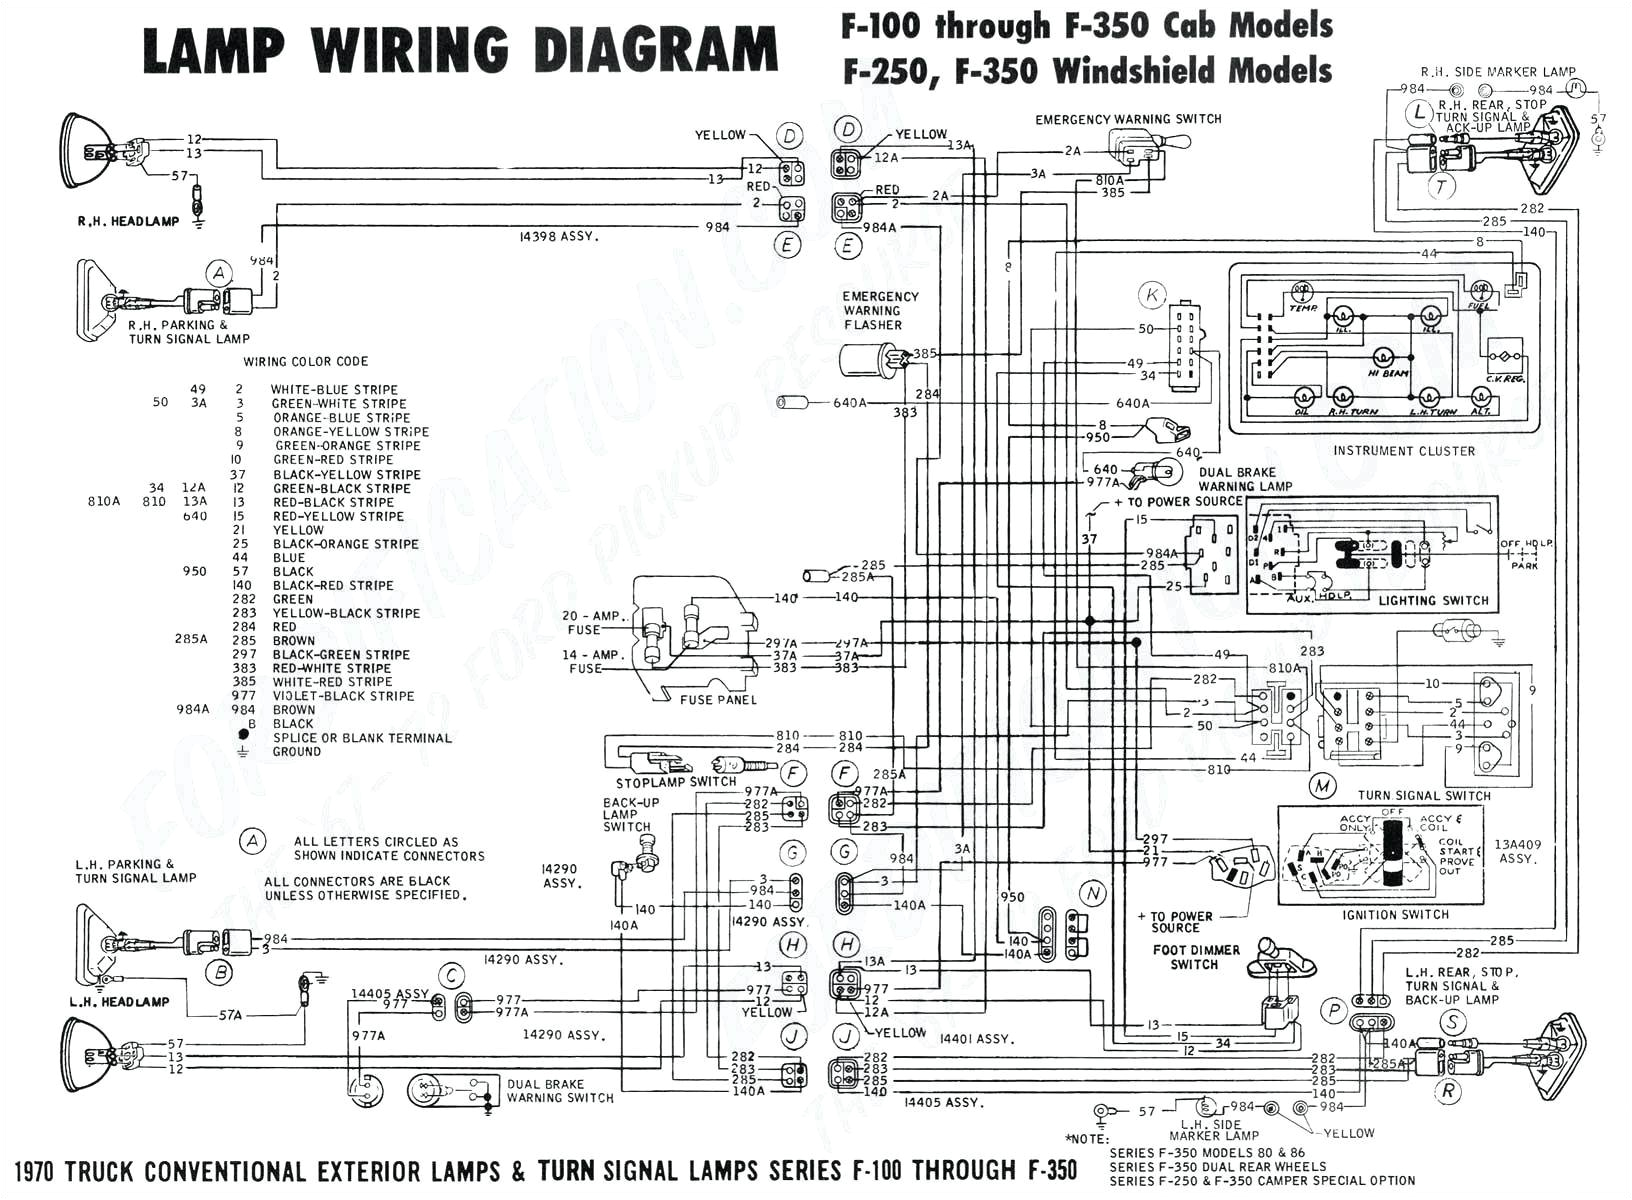 1997 ford expedition radio wiring diagram simplified shapes for 19981997 ford expedition radio wiring diagram simplified